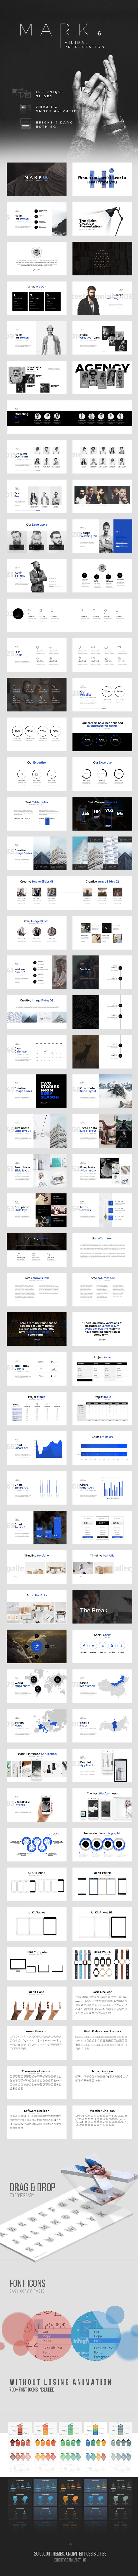 Mark06 - Minimal Keynote Template - Abstract Keynote Templates